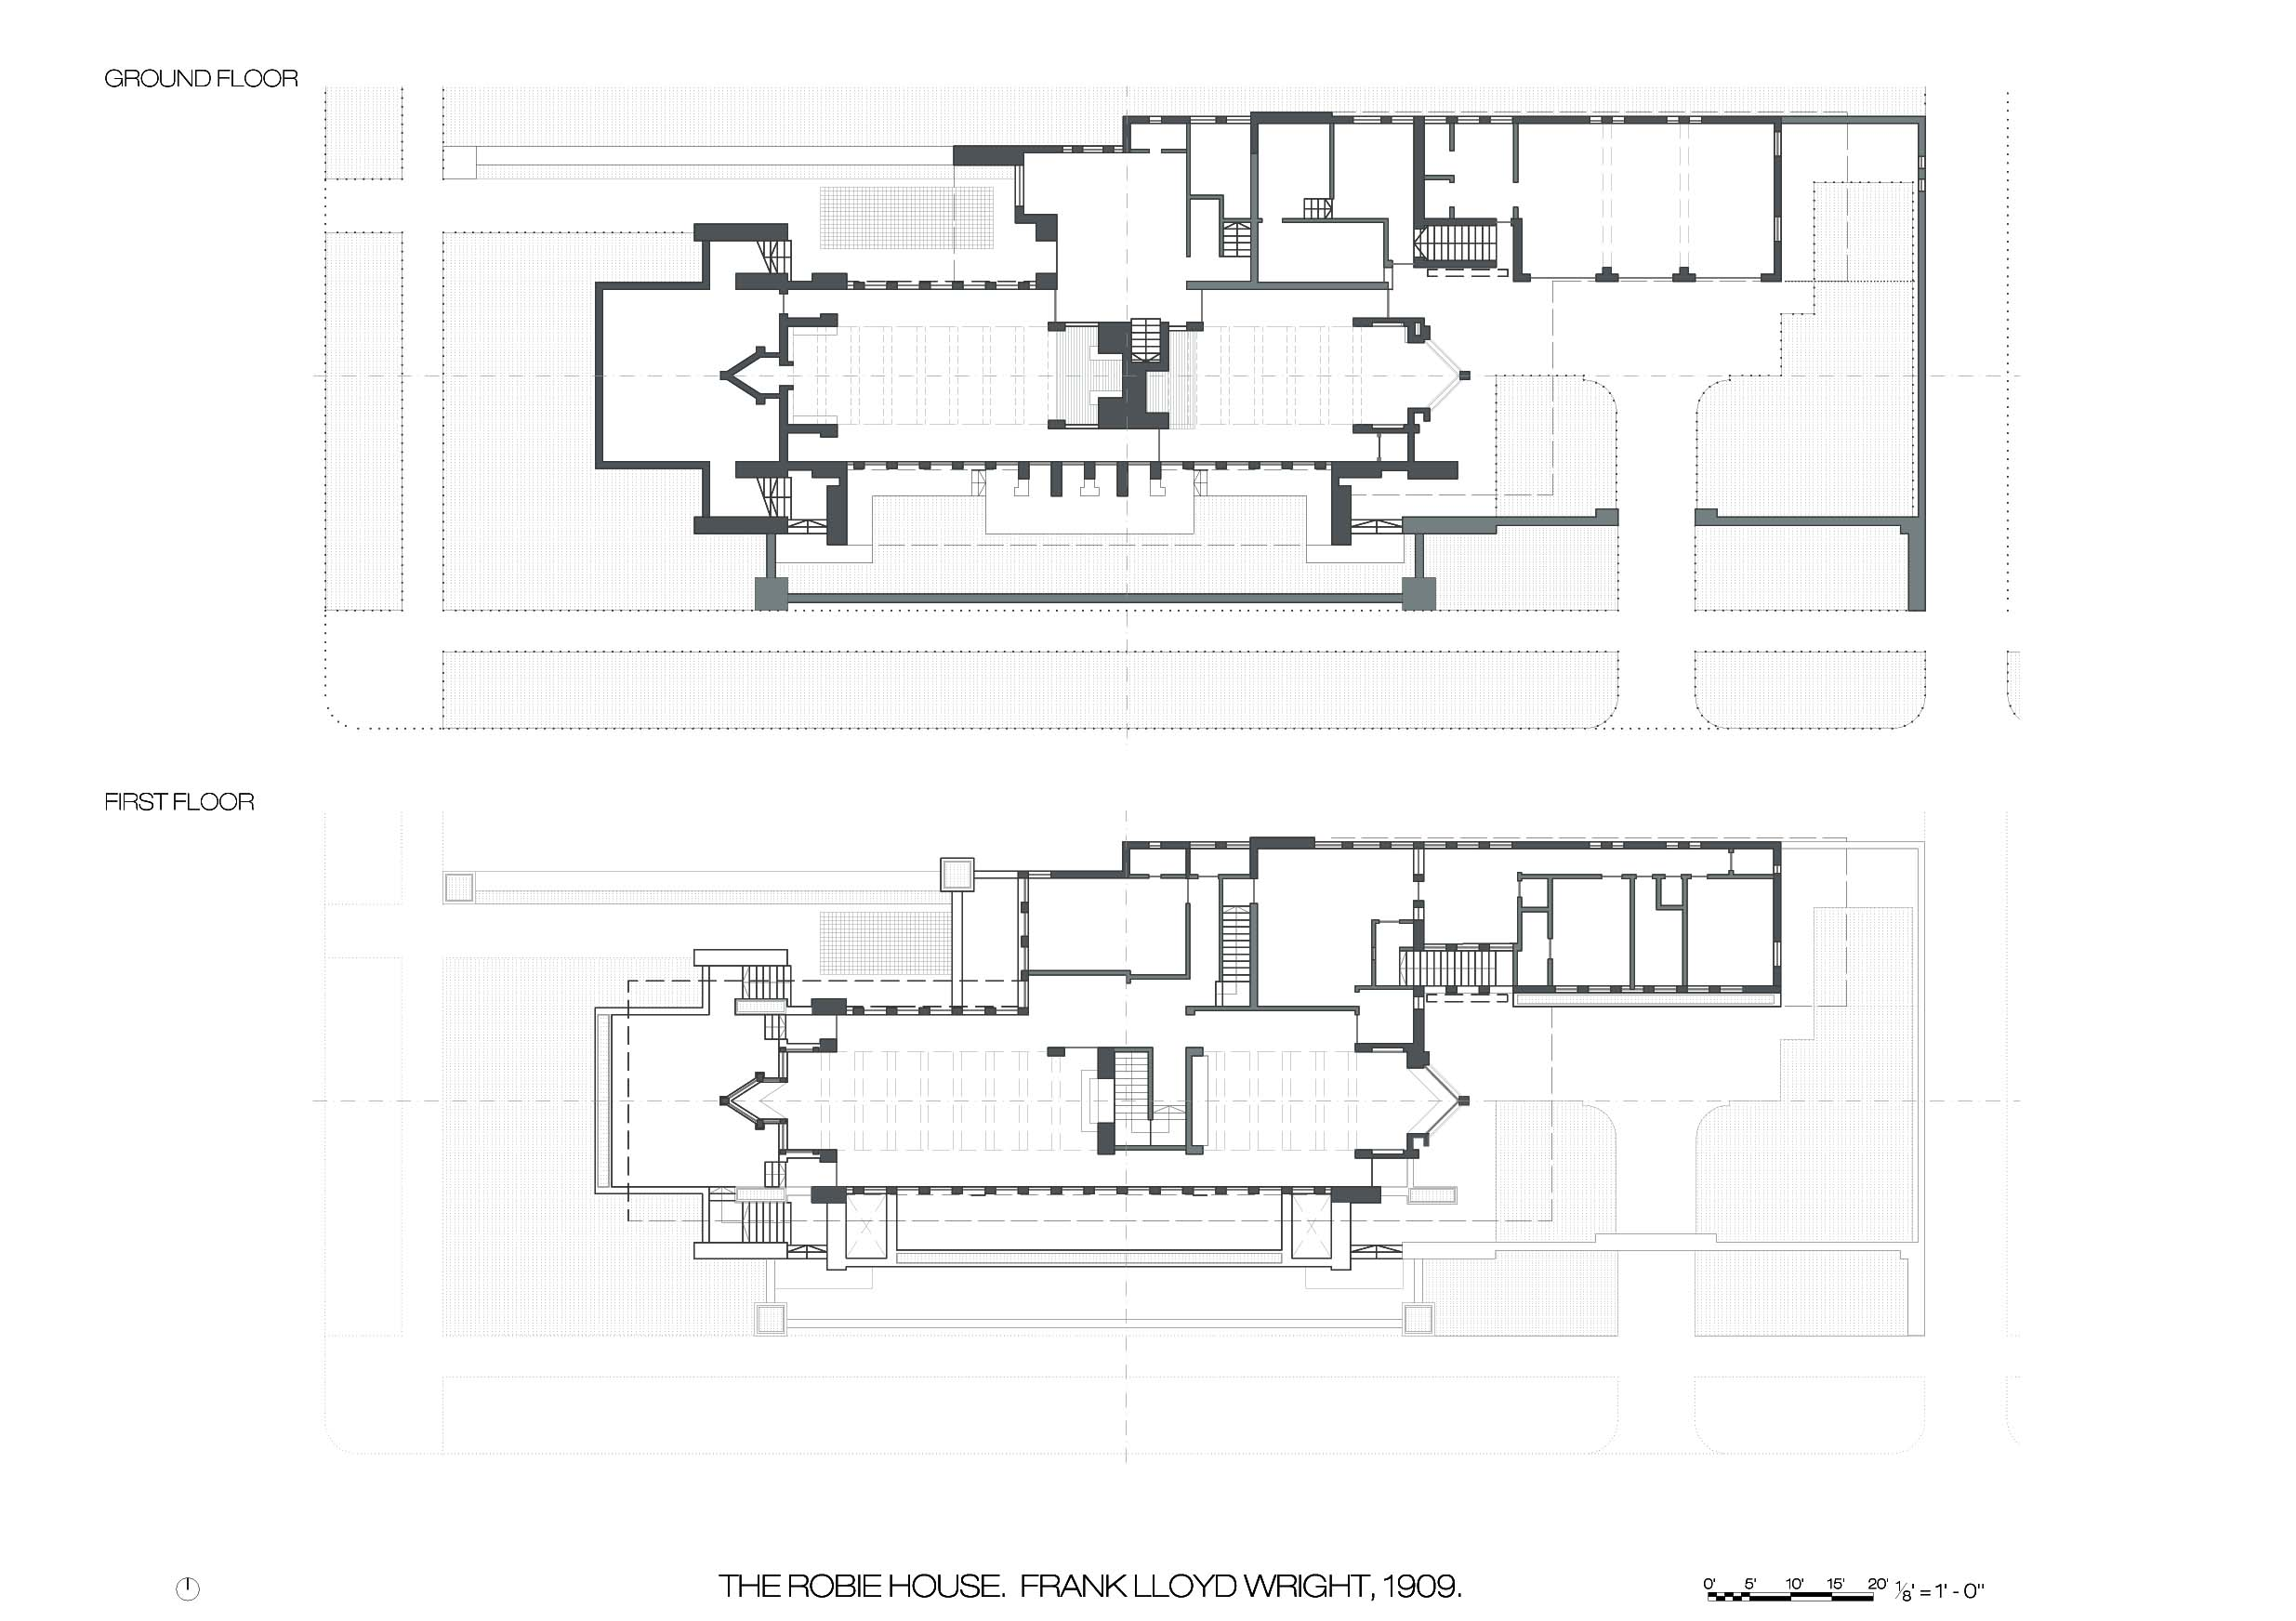 Robie house by frank lloyd wright cristina olucha Frank lloyd wright floor plan